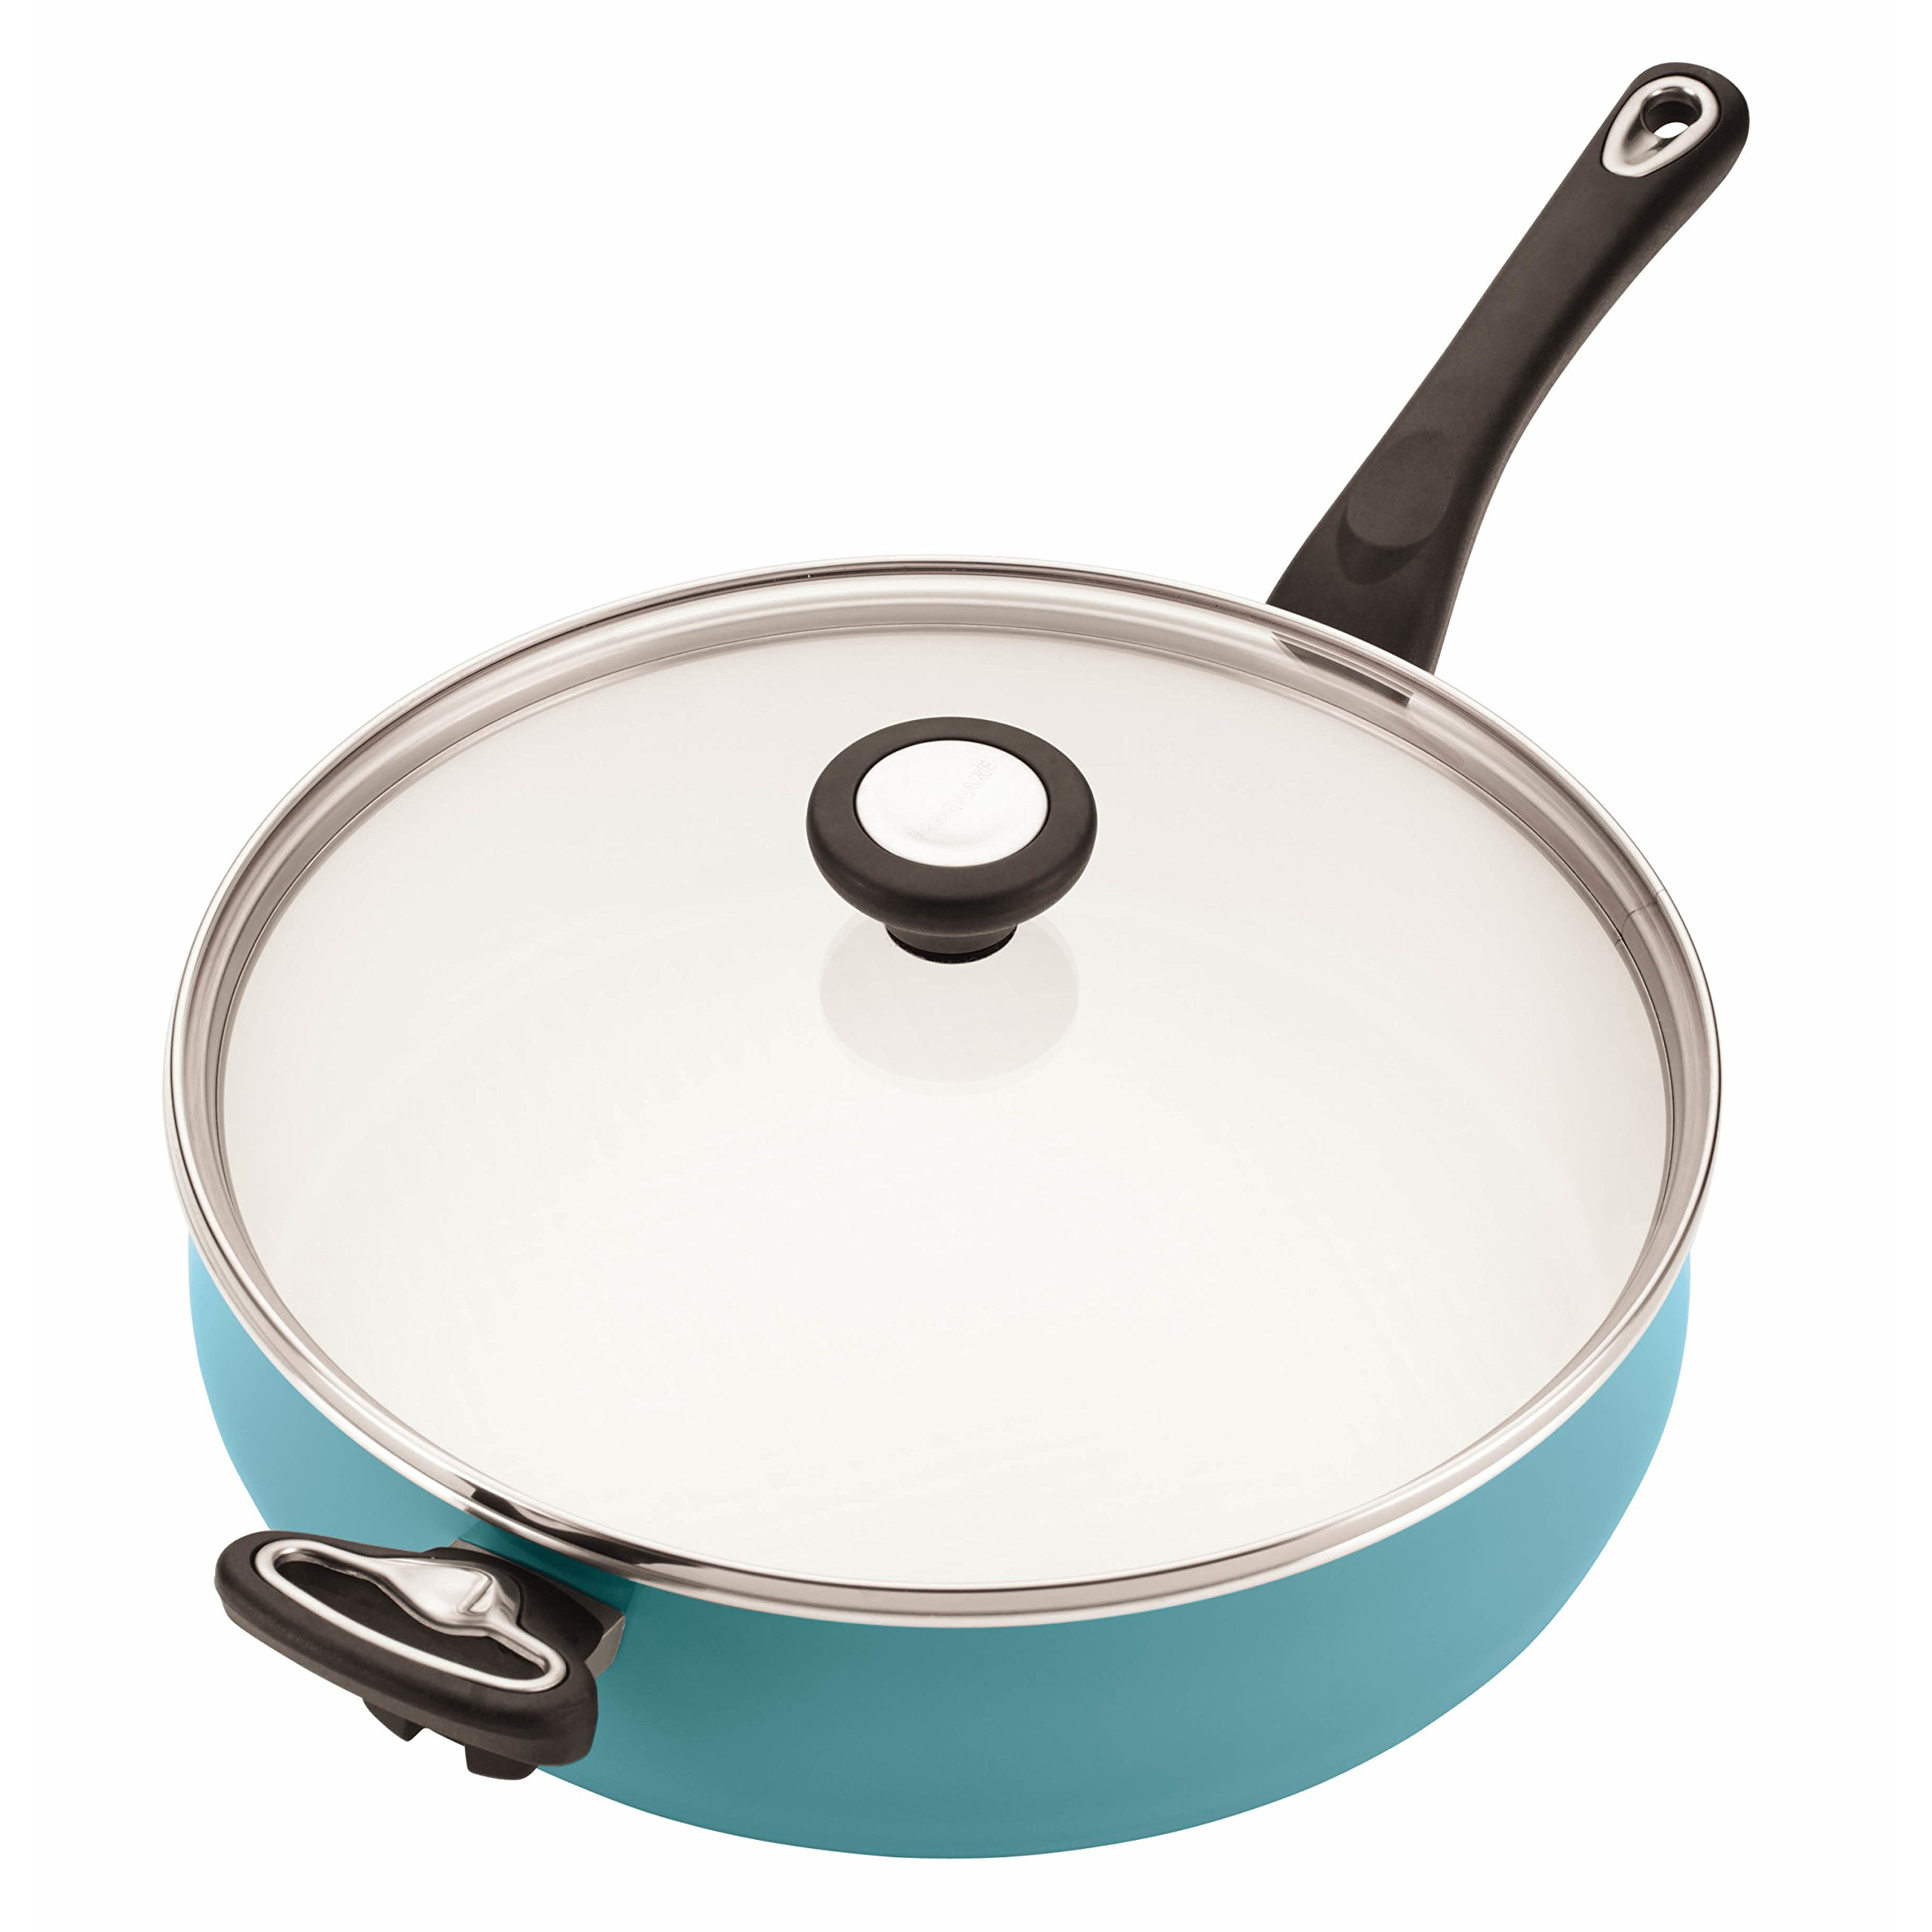 Farberware PURECOOK Ceramic Nonstick Cookware 5-Quart Covered Jumbo Cooker with Helper Handle, Aqua by Farberware (Image #3)